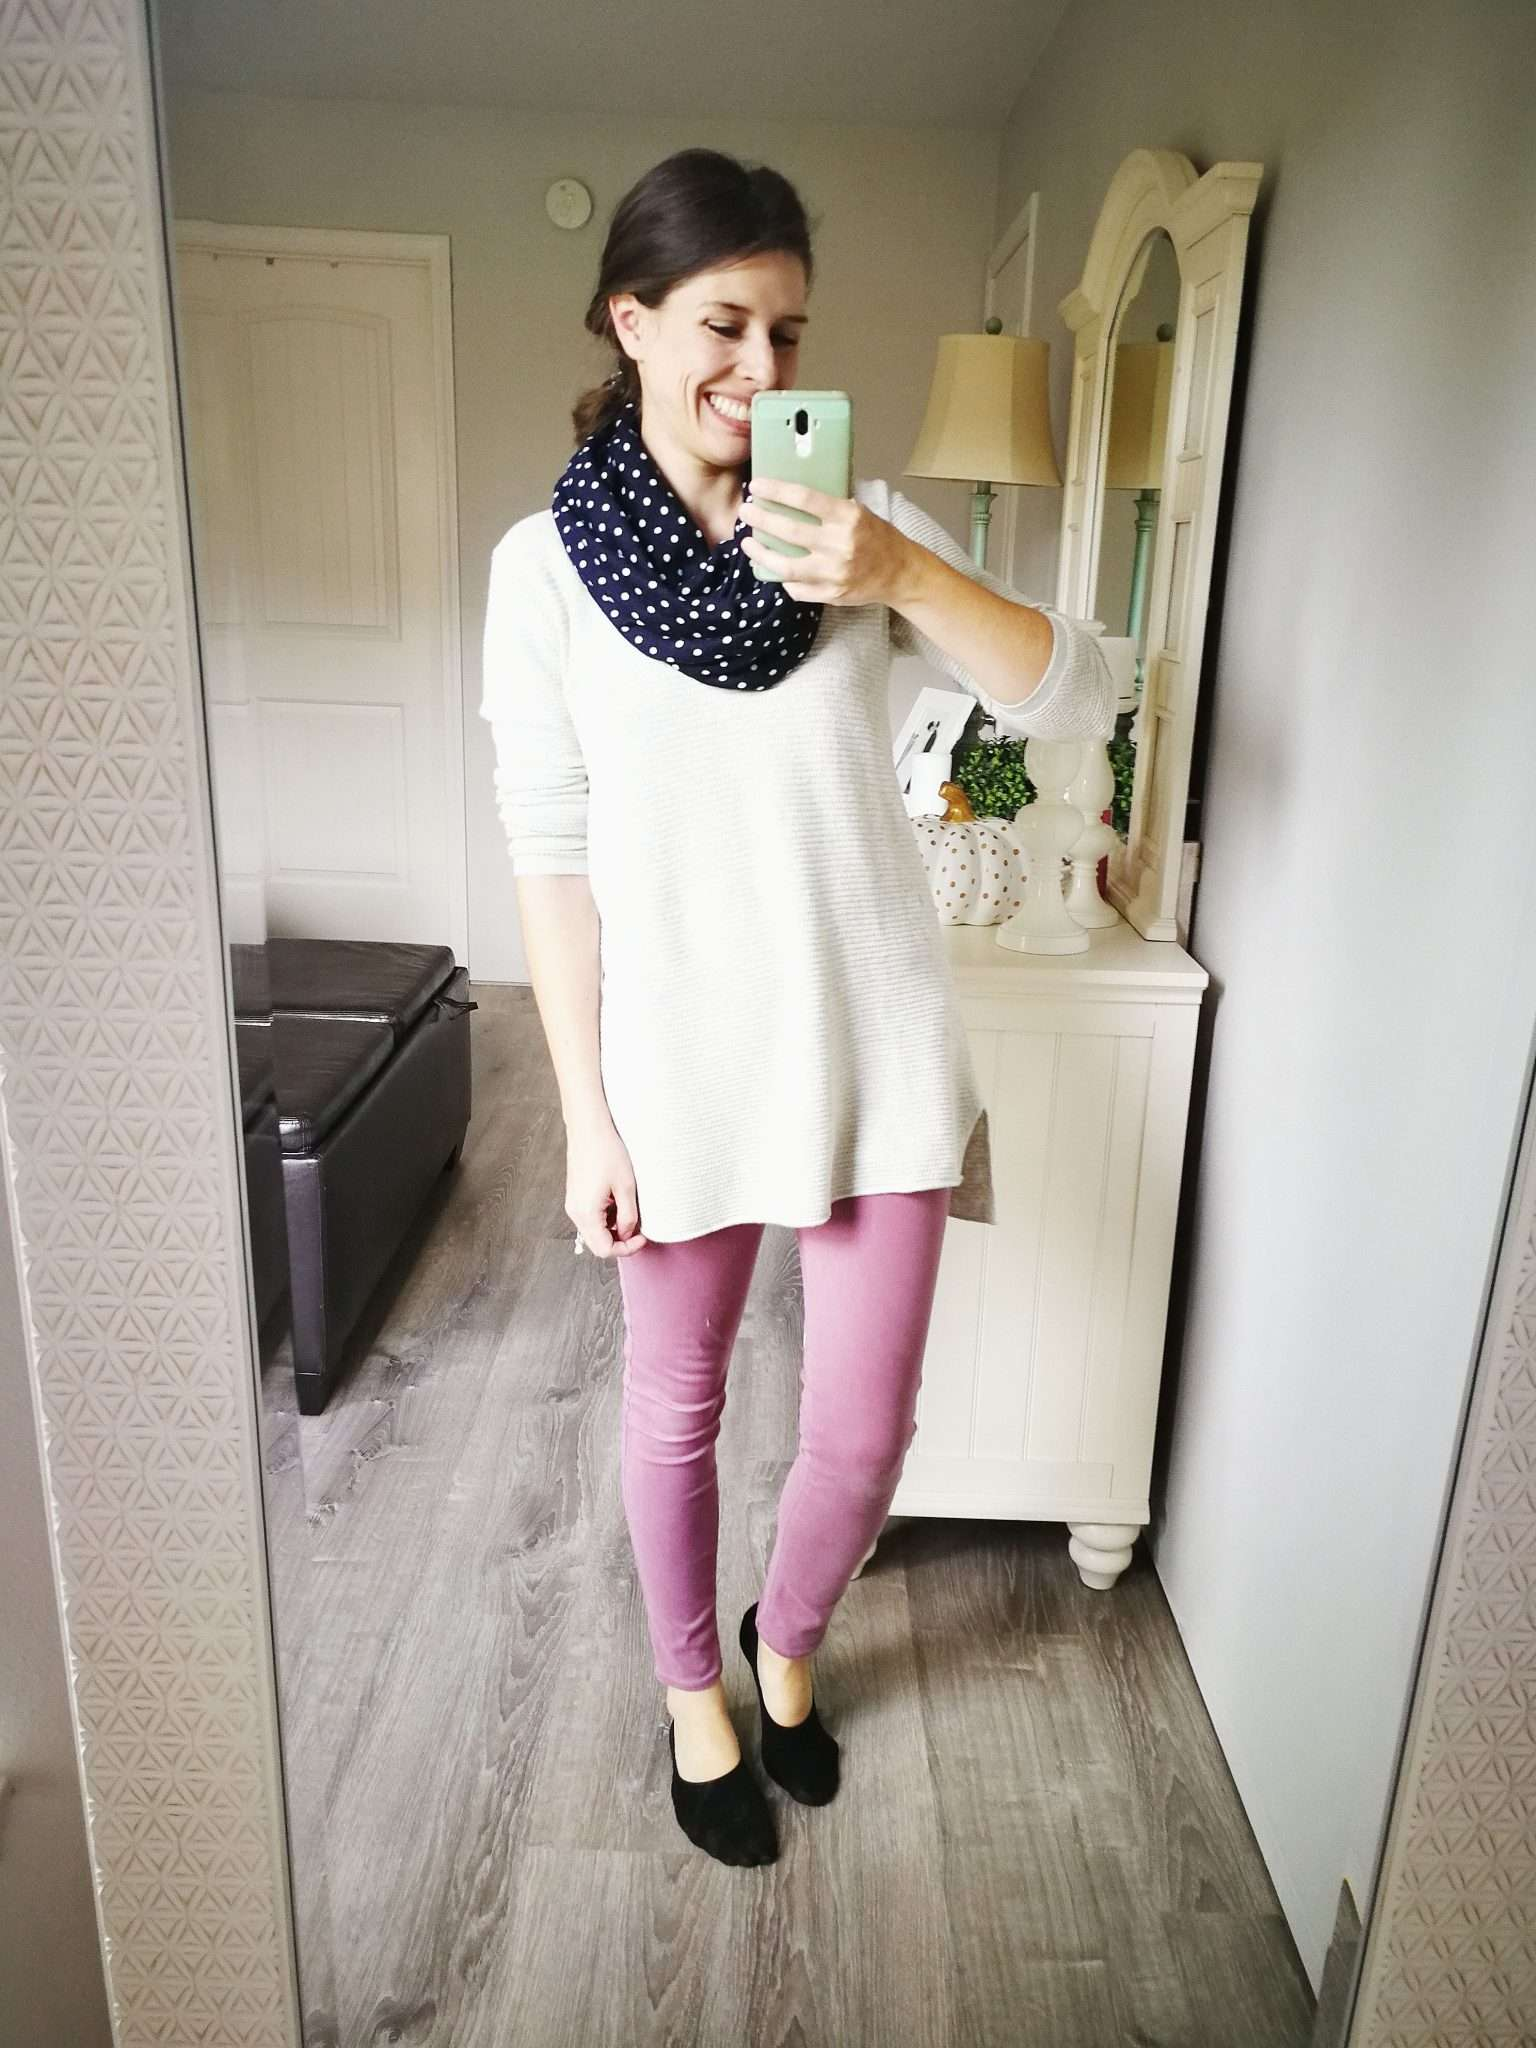 How to wear a long sweater without looking frumpy - slouchy top with skinny pants.